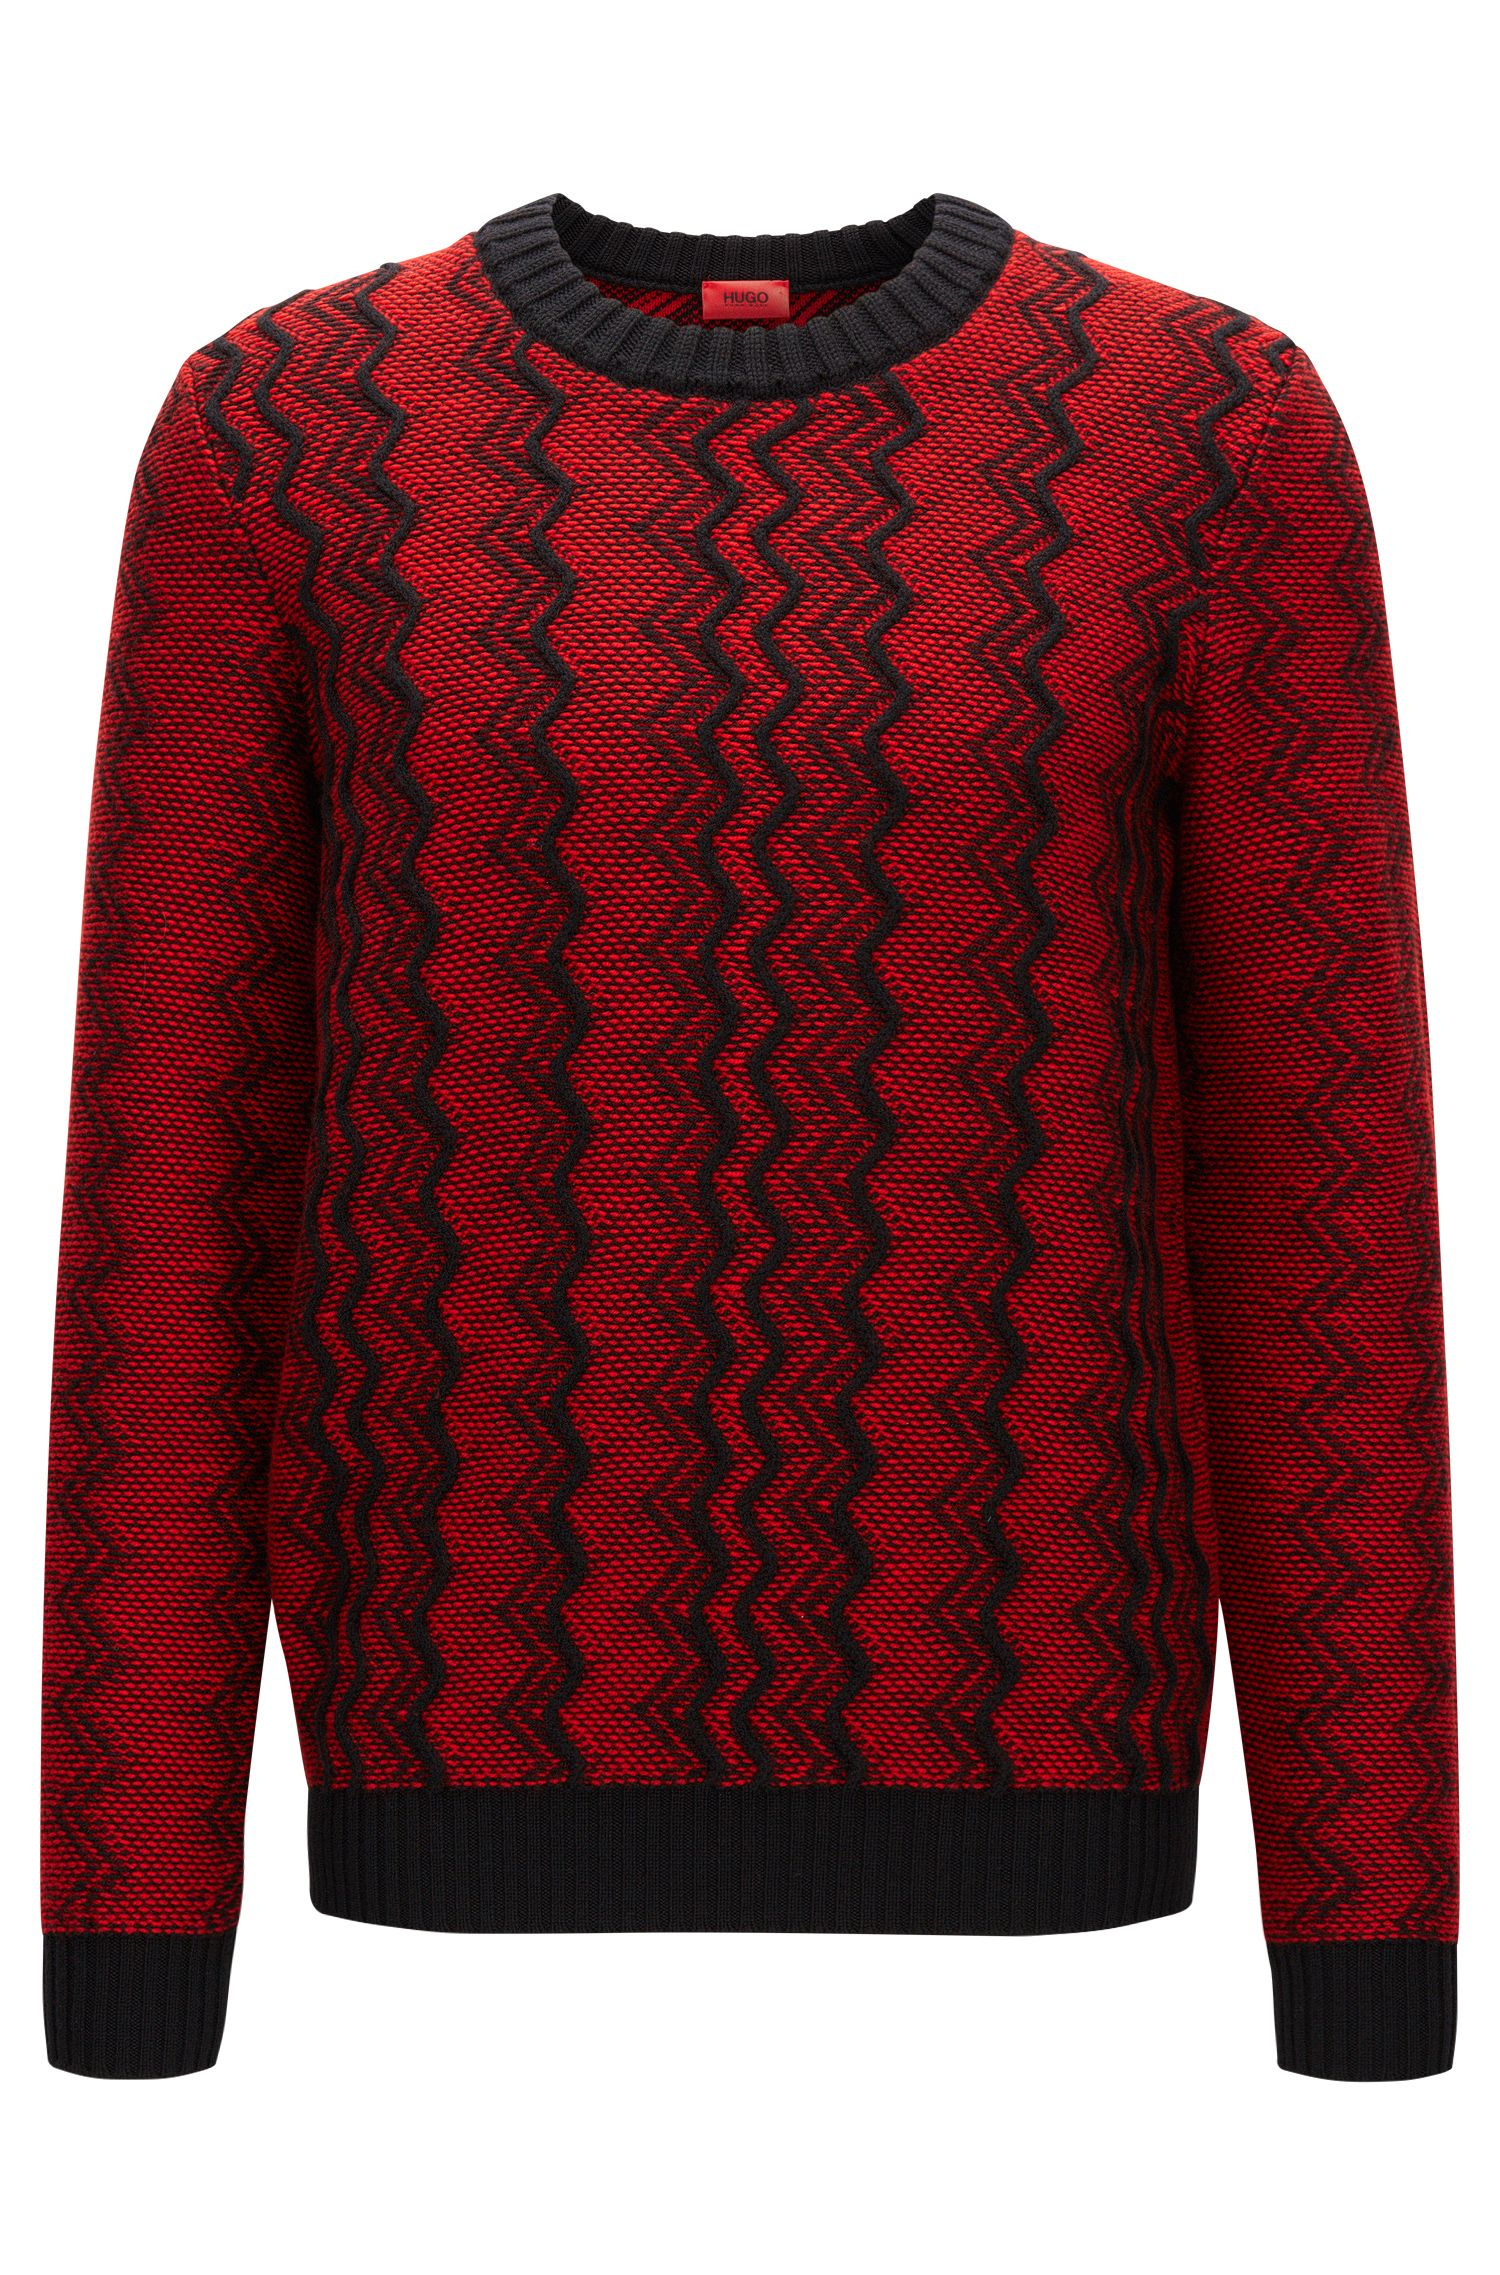 Zig Zag Virgin Wool Sweater | Sigsag